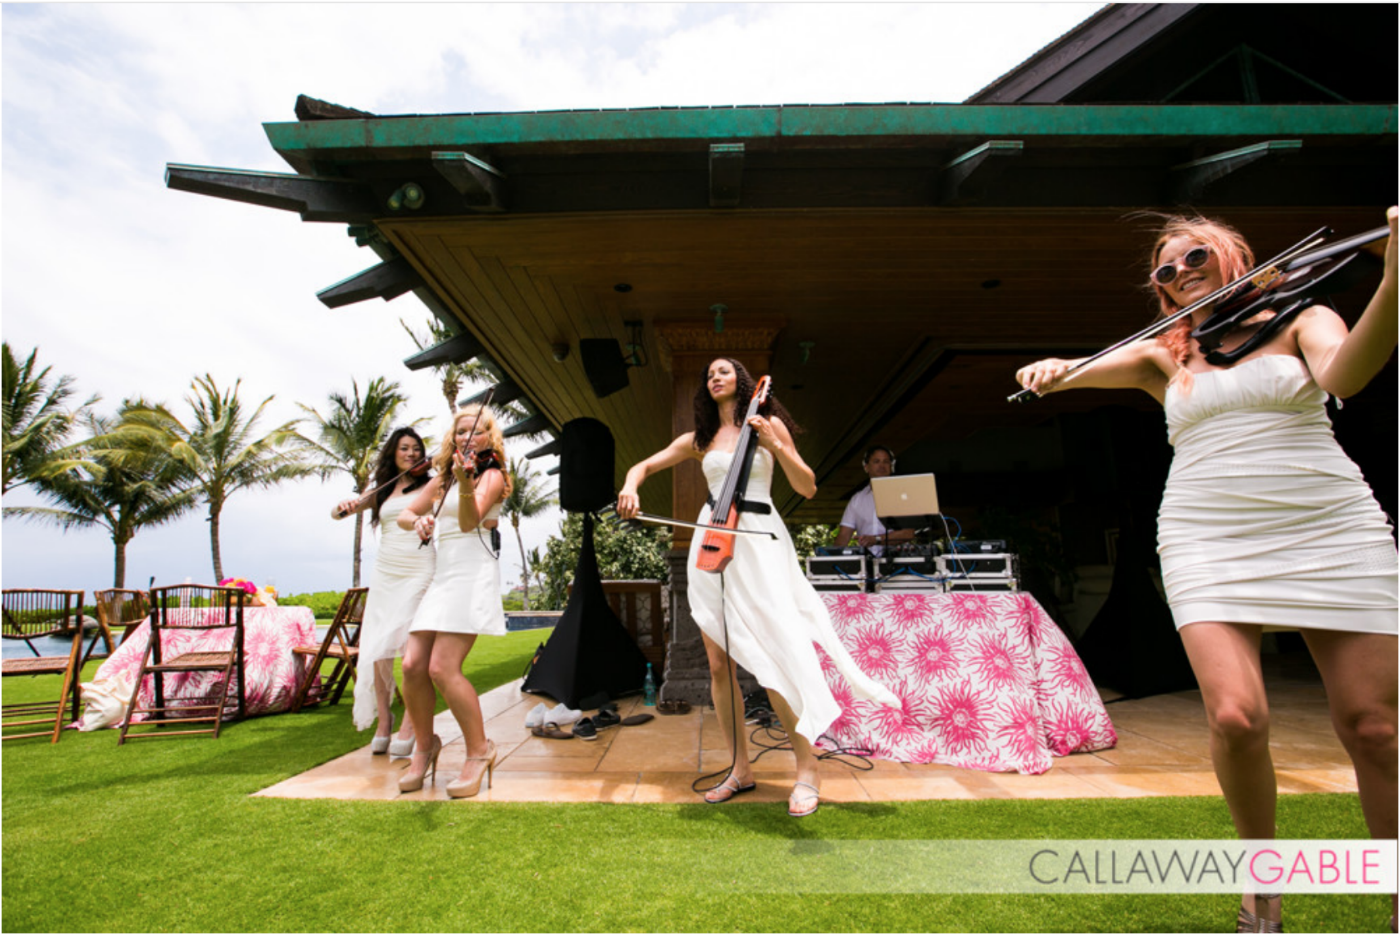 los-angeles-wedding-music-live-event-electric-violinist-string-quartet-DJ-maui-edm-3.png